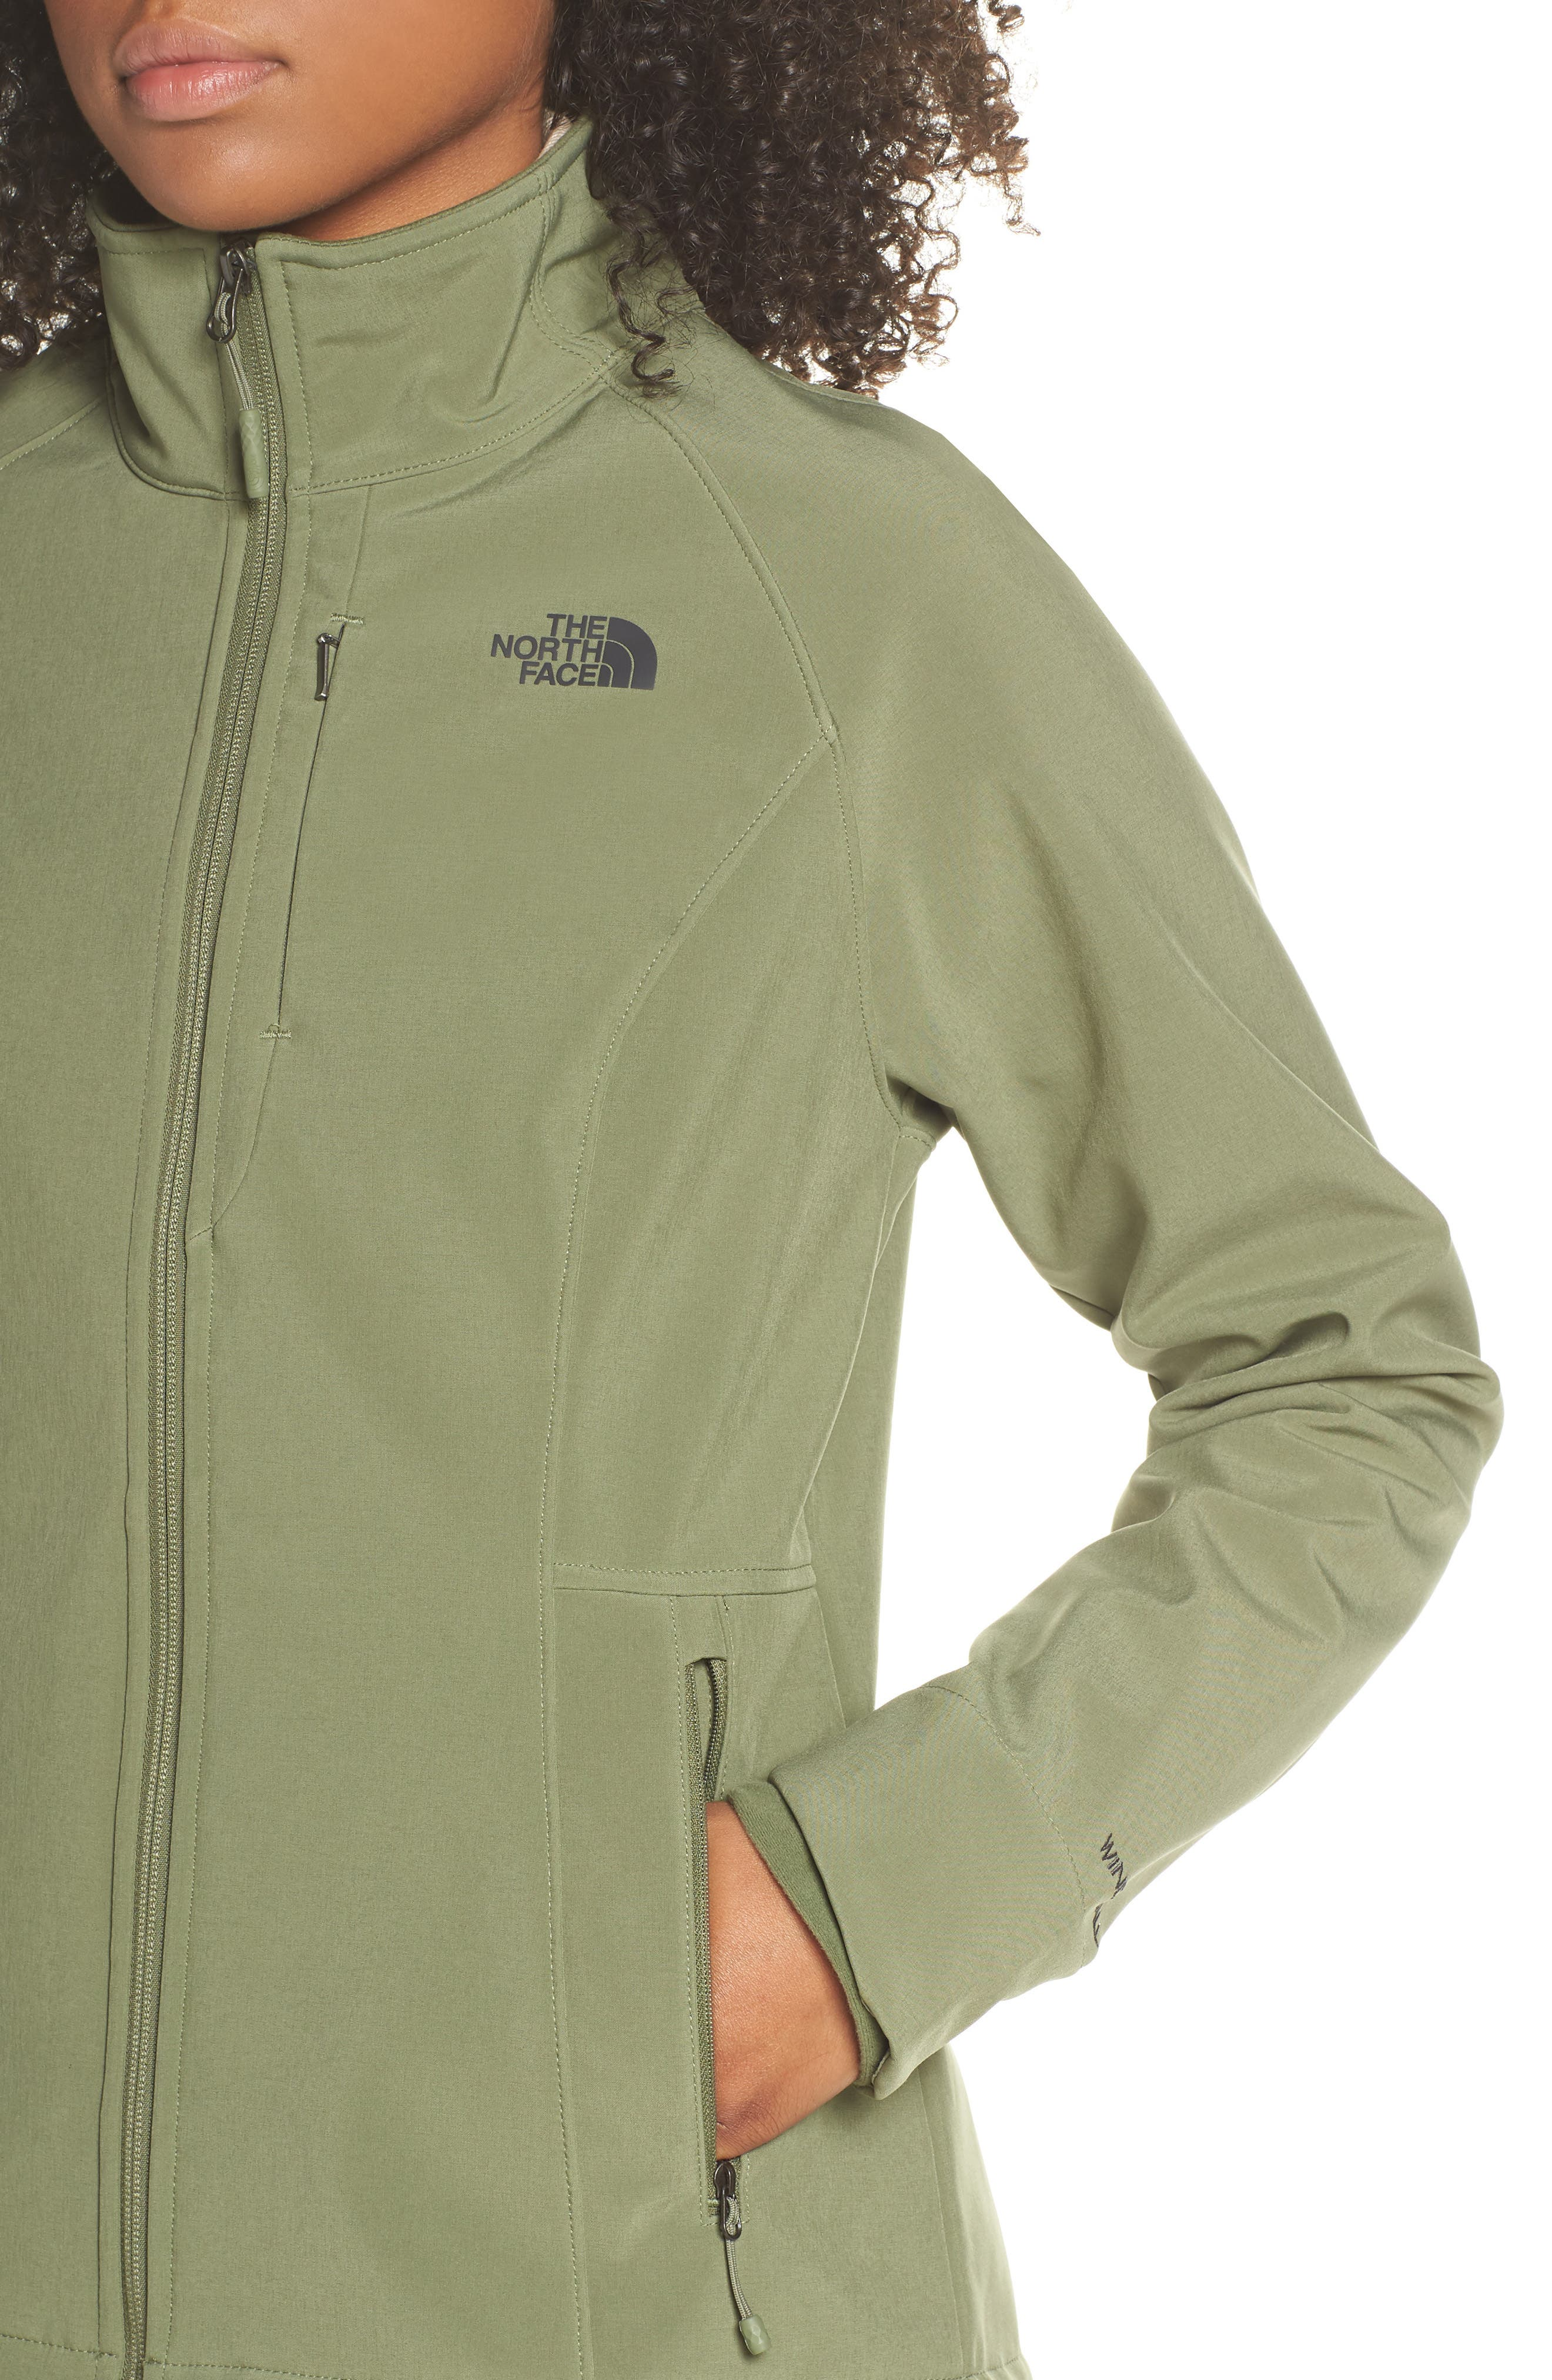 THE NORTH FACE, 'Apex Bionic 2' Jacket, Alternate thumbnail 4, color, 301